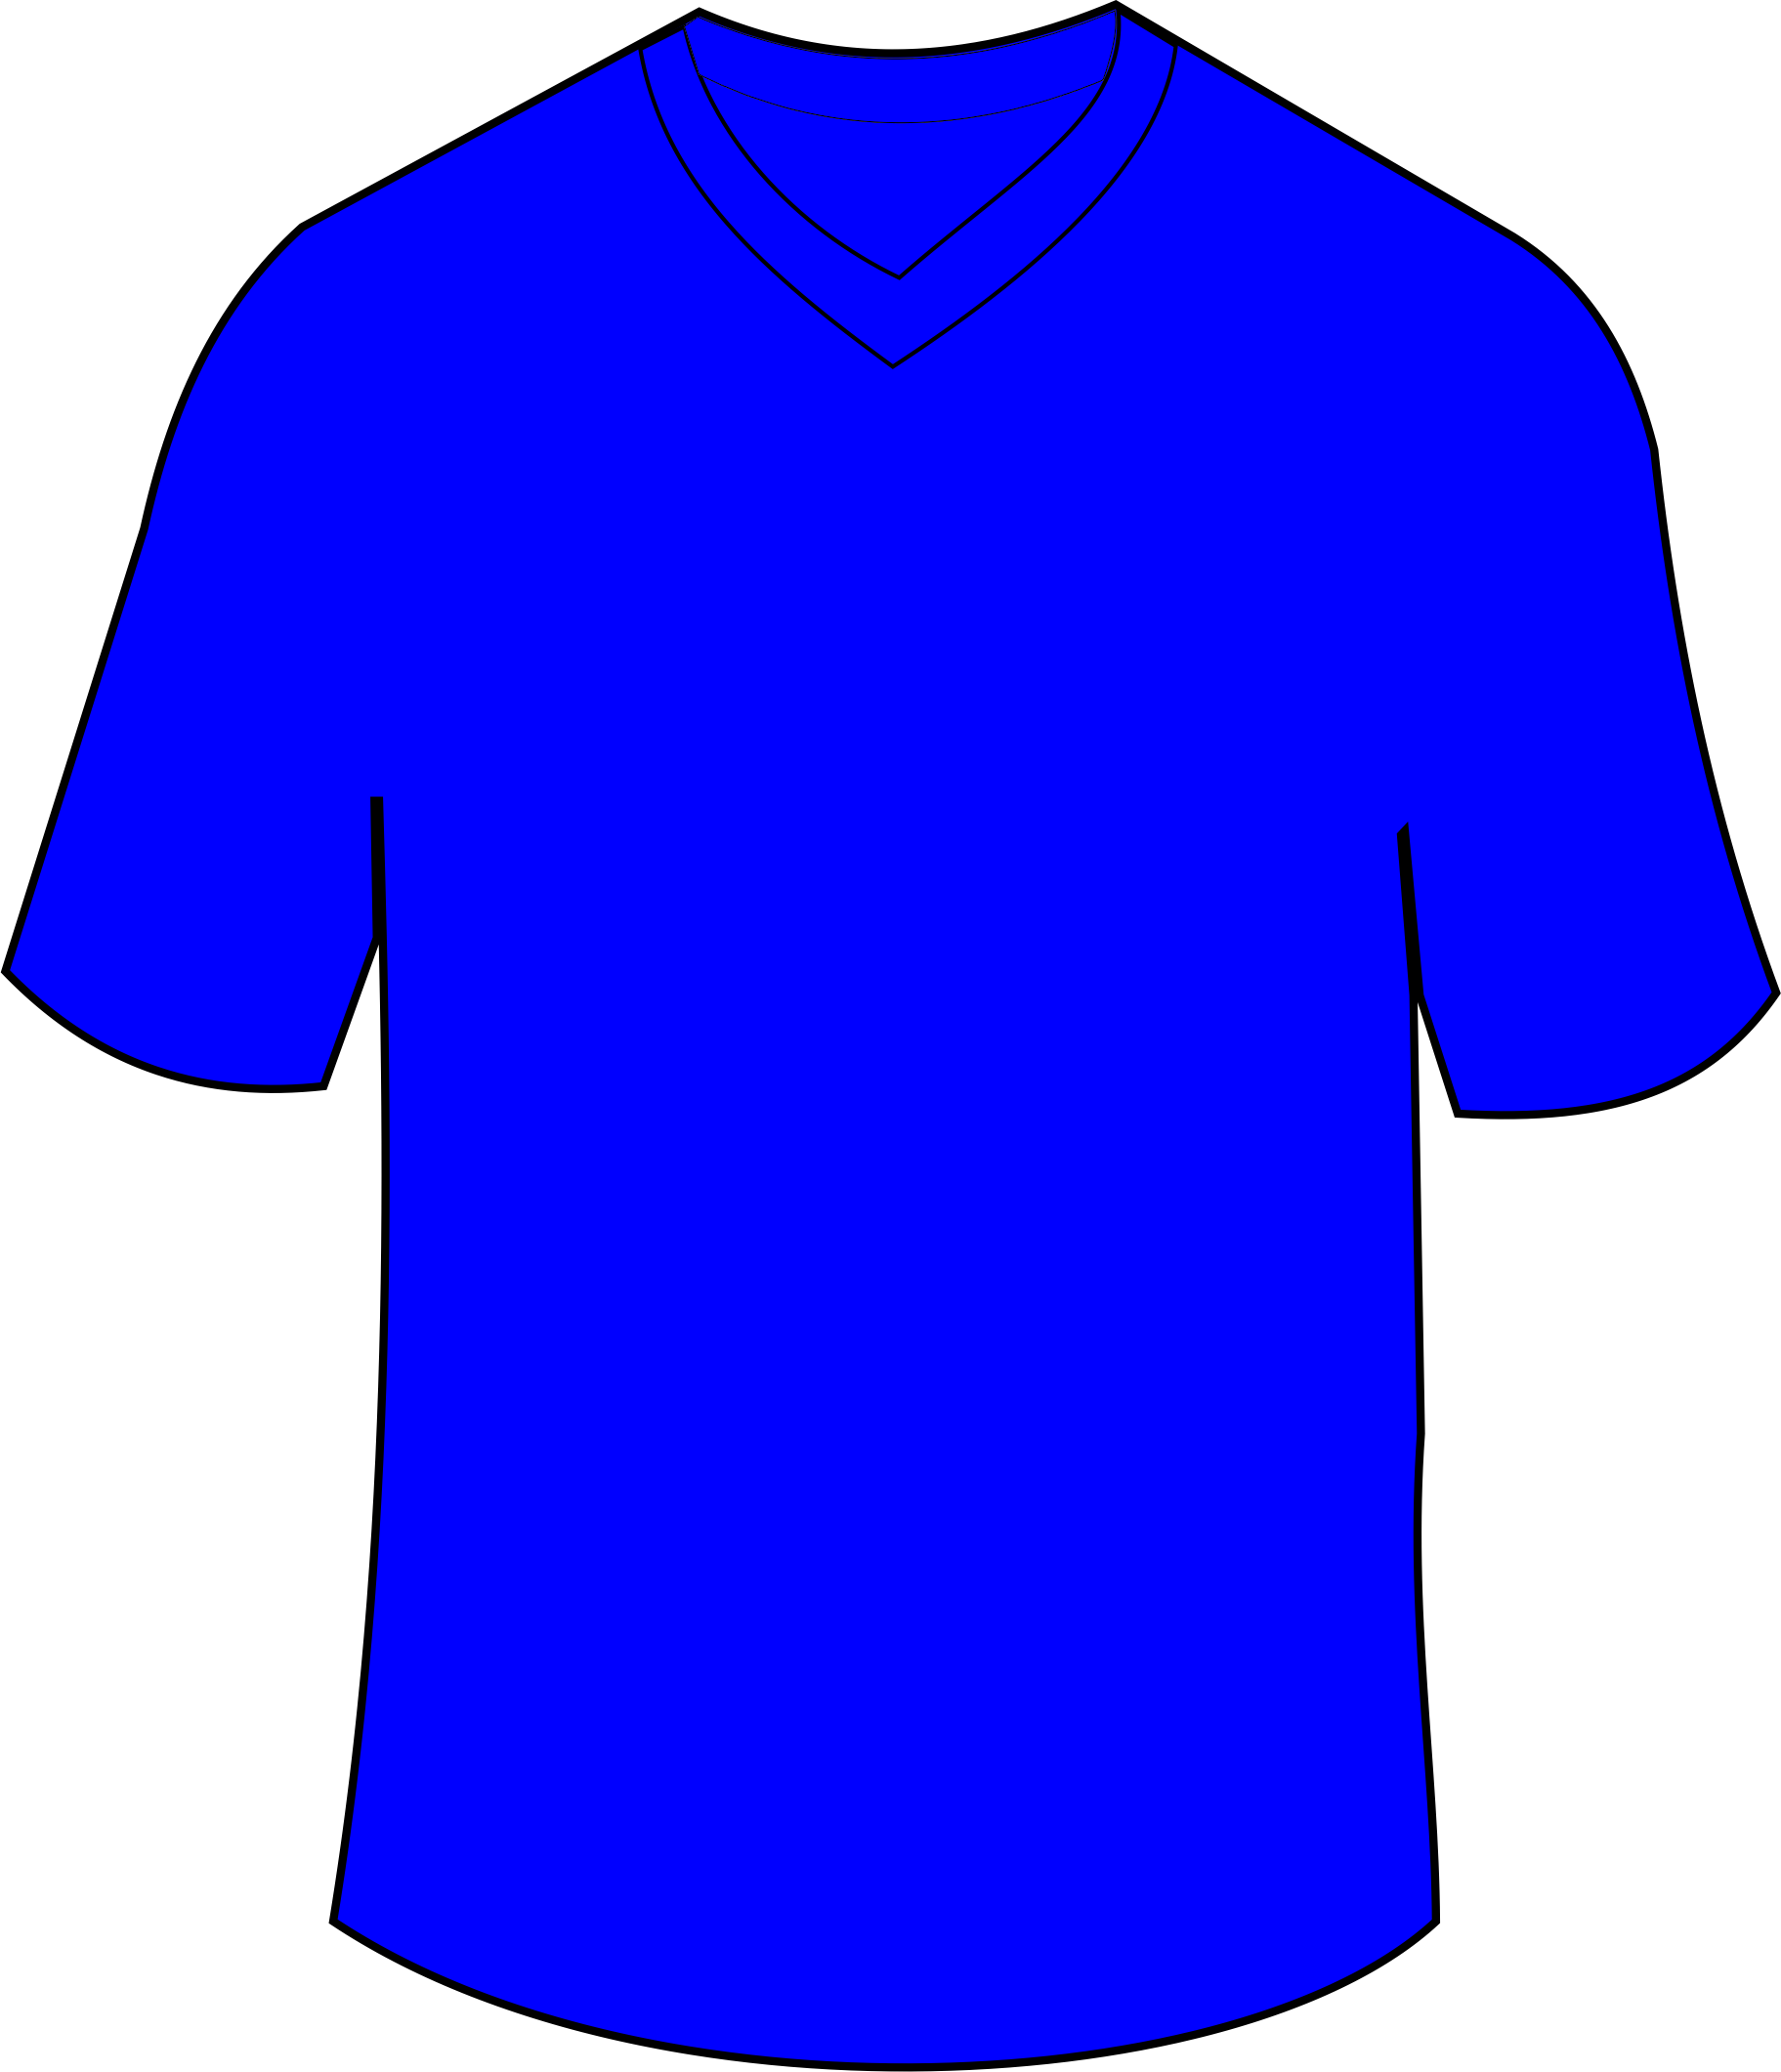 Jersey vector animated. T shirt blue clothing